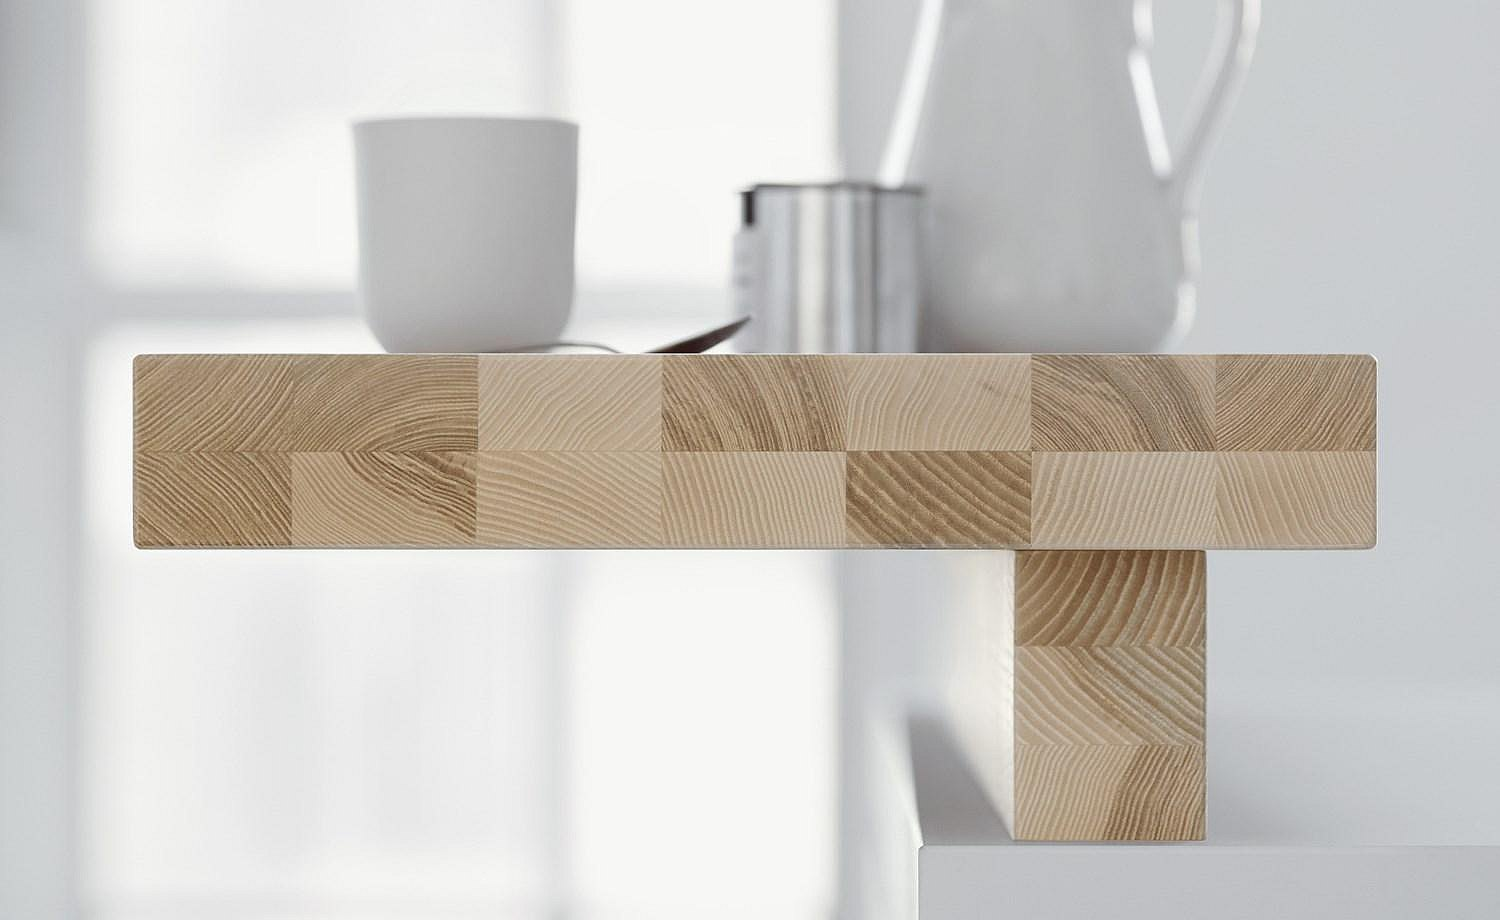 Soul of the kitchen: bar element with individual grain and precise layered adhesion